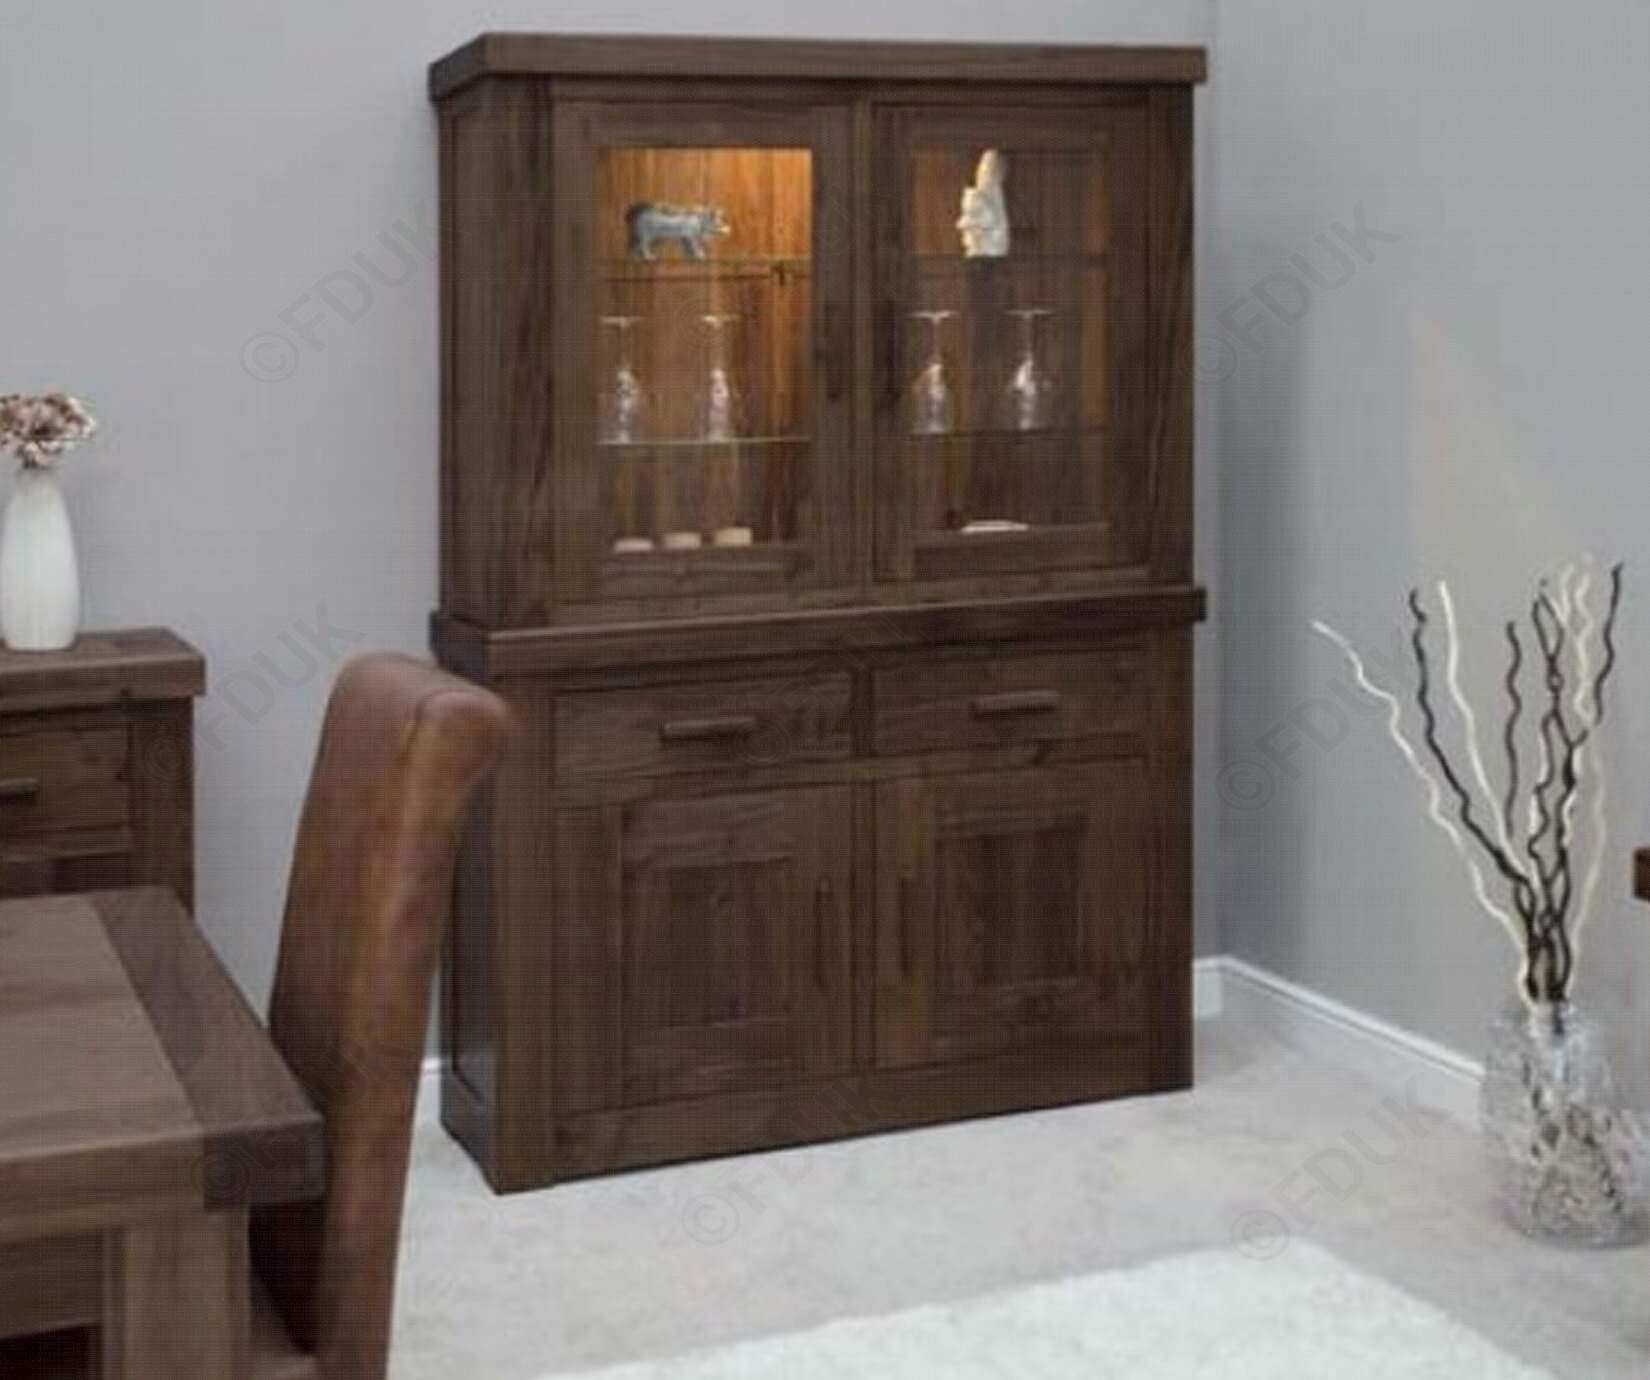 Homestyle Gb   Walnut Small Top For Sideboard   Furnituredirectuk Pertaining To Recent Walnut Small Sideboards (View 12 of 20)